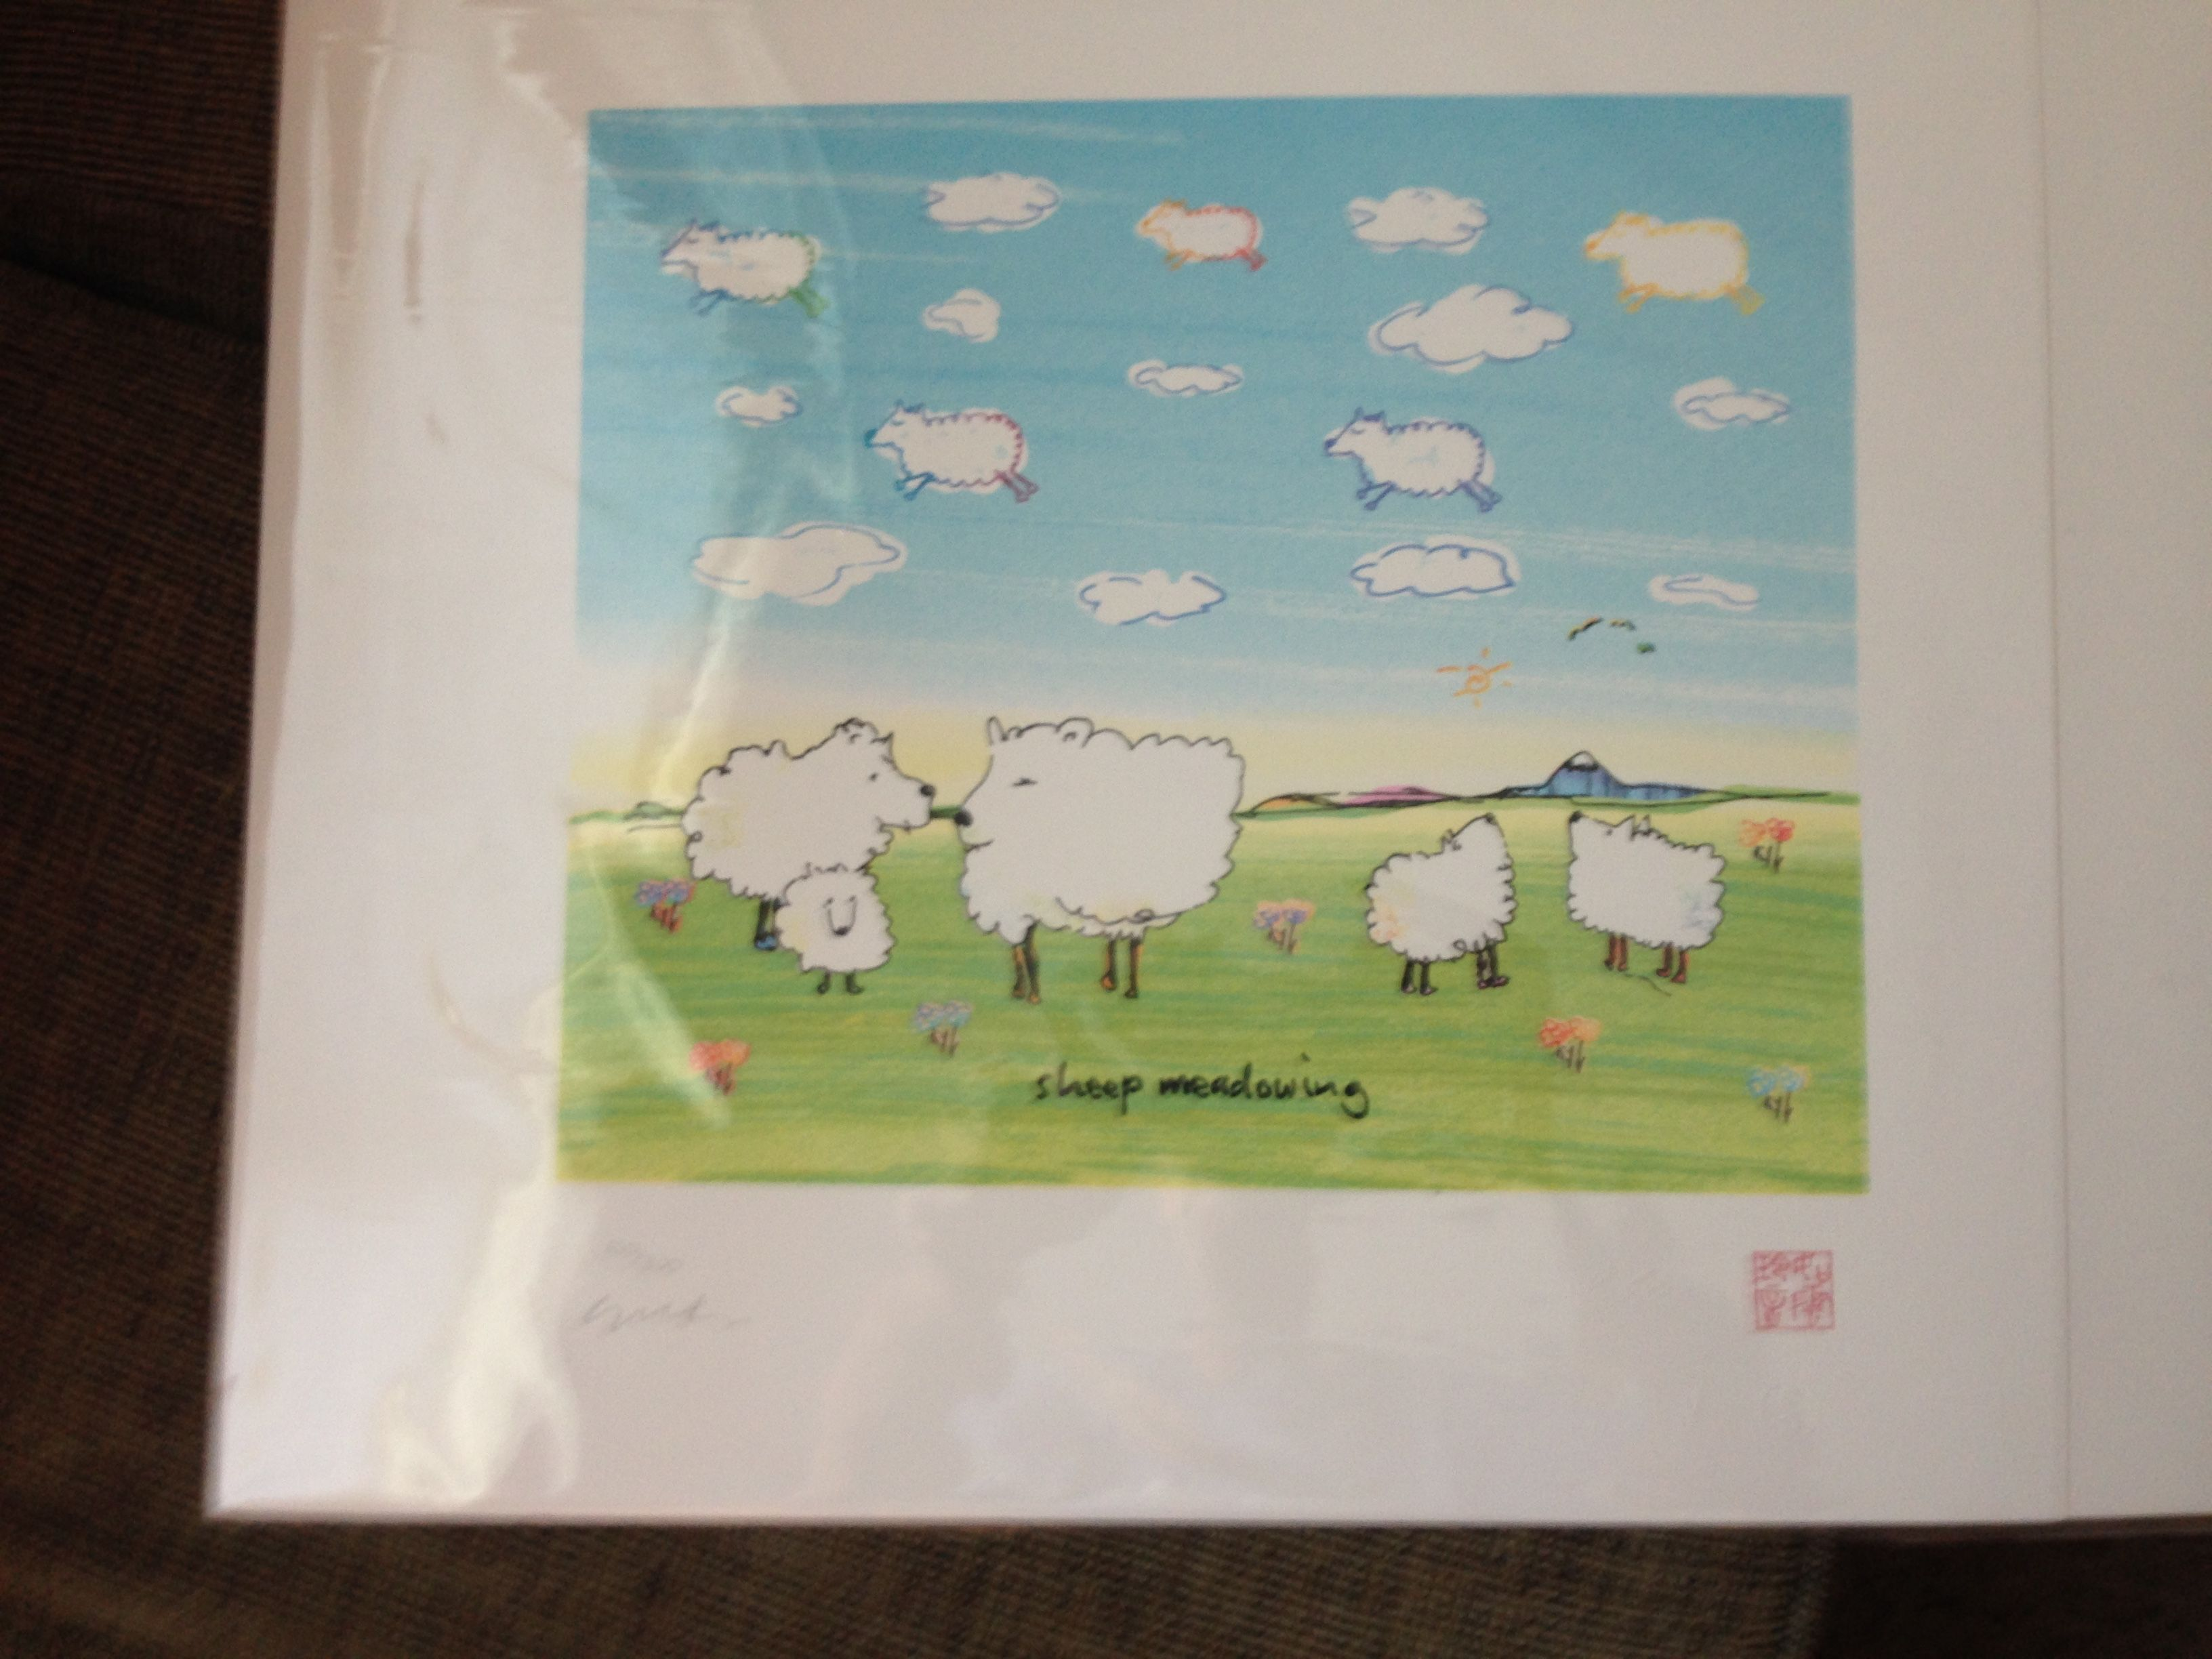 John Lennon Sheep Meadowing 1970-1980 14 X 15 inches